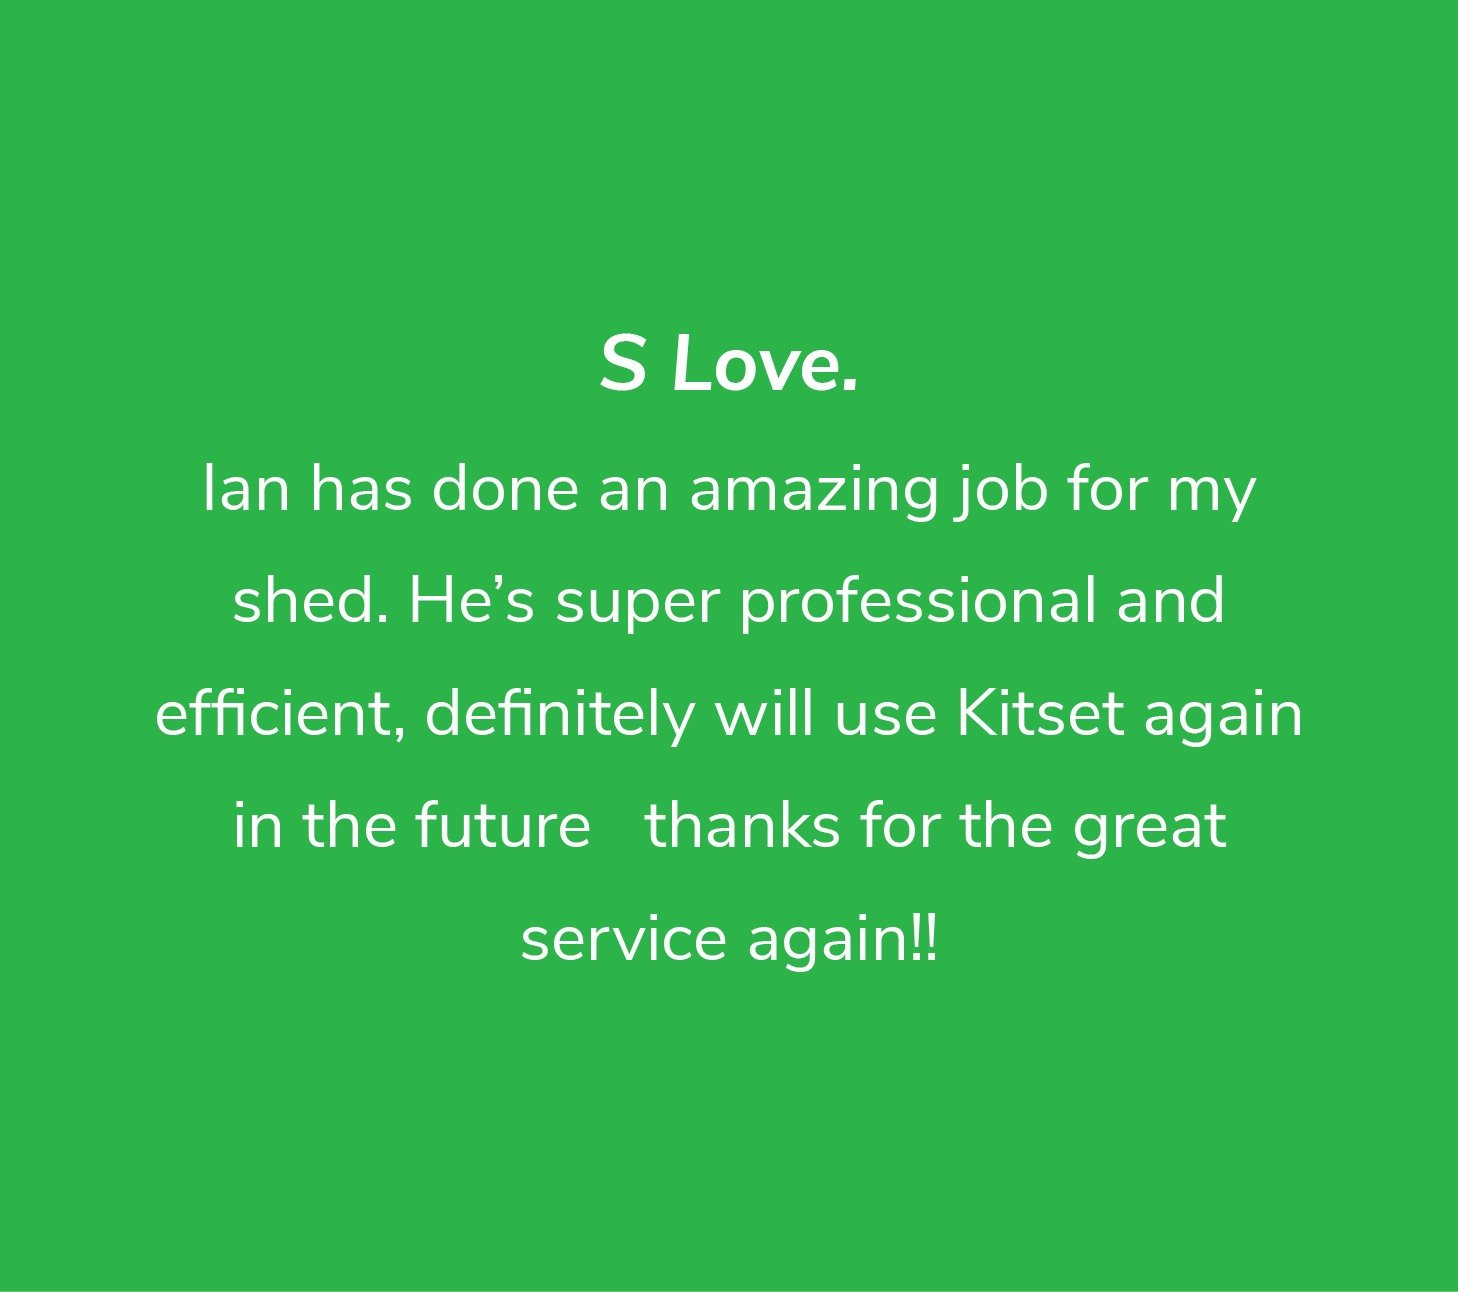 Customer review from S Love